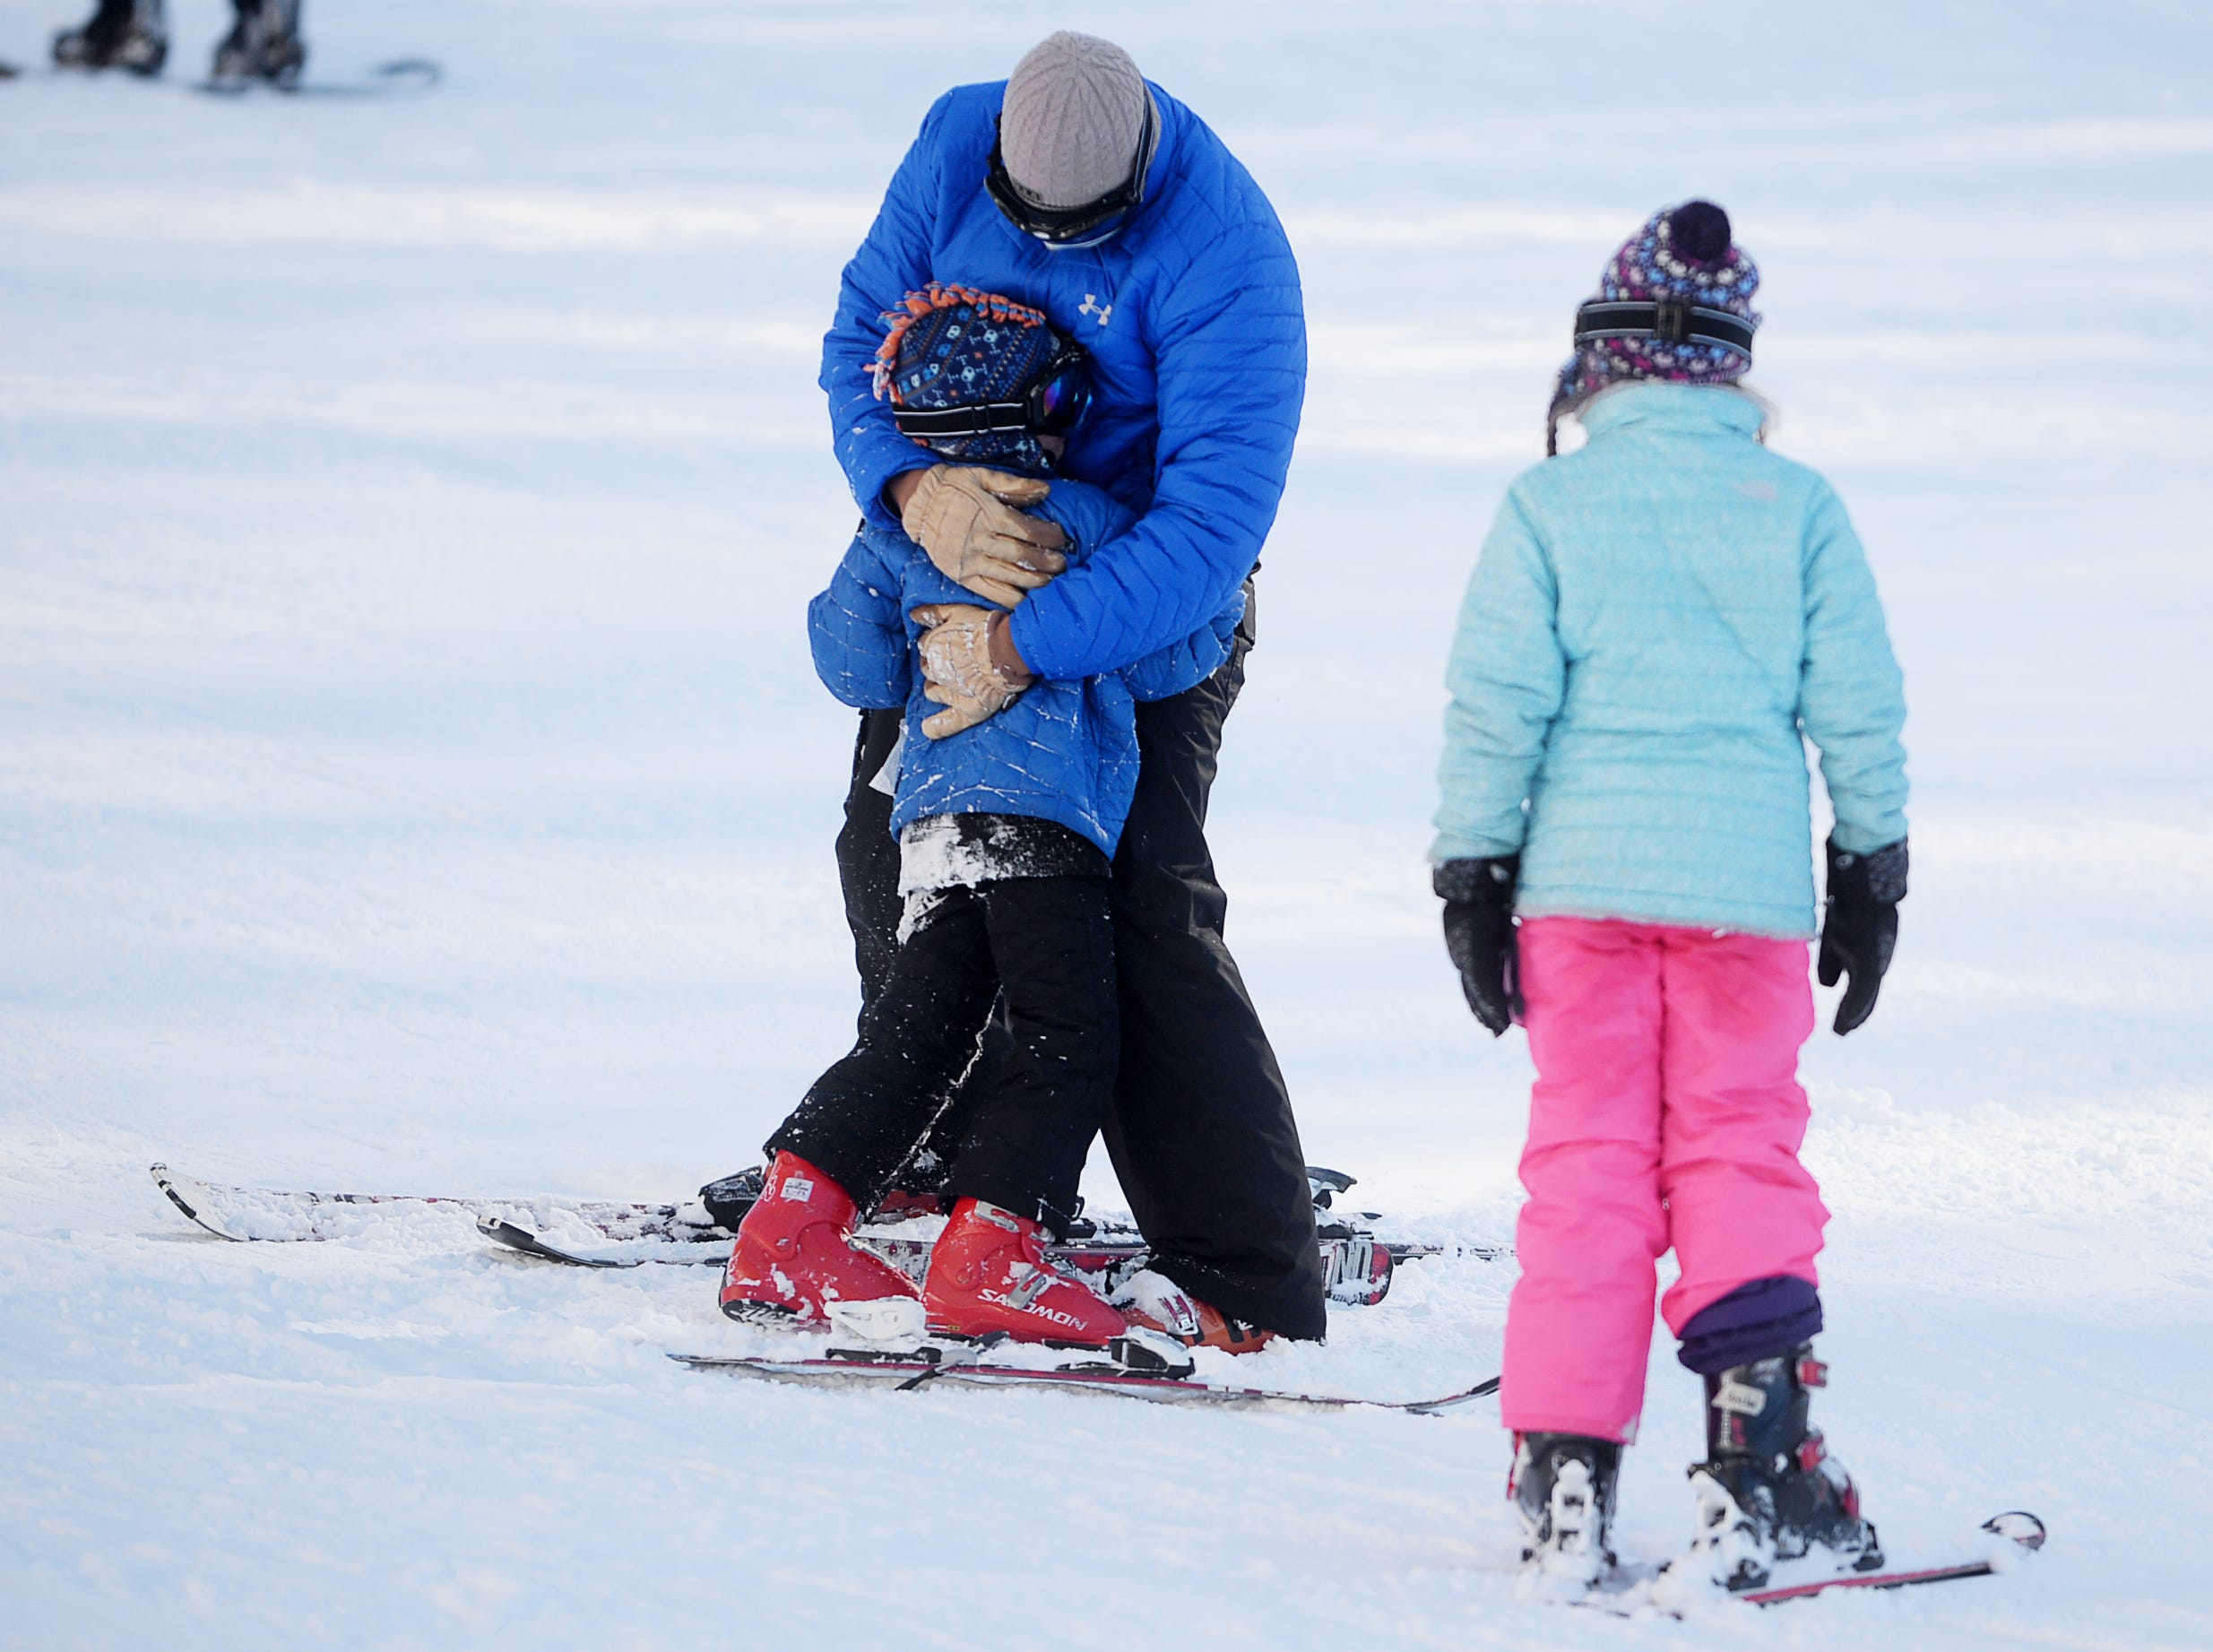 Justin Ruzicka consoles his son, Logan, after the 7-year-old fell while skiing at Wolf Ridge Ski Resort as his daughter, Amelia, 9, looks on in Mars Hill Dec. 22, 2018.